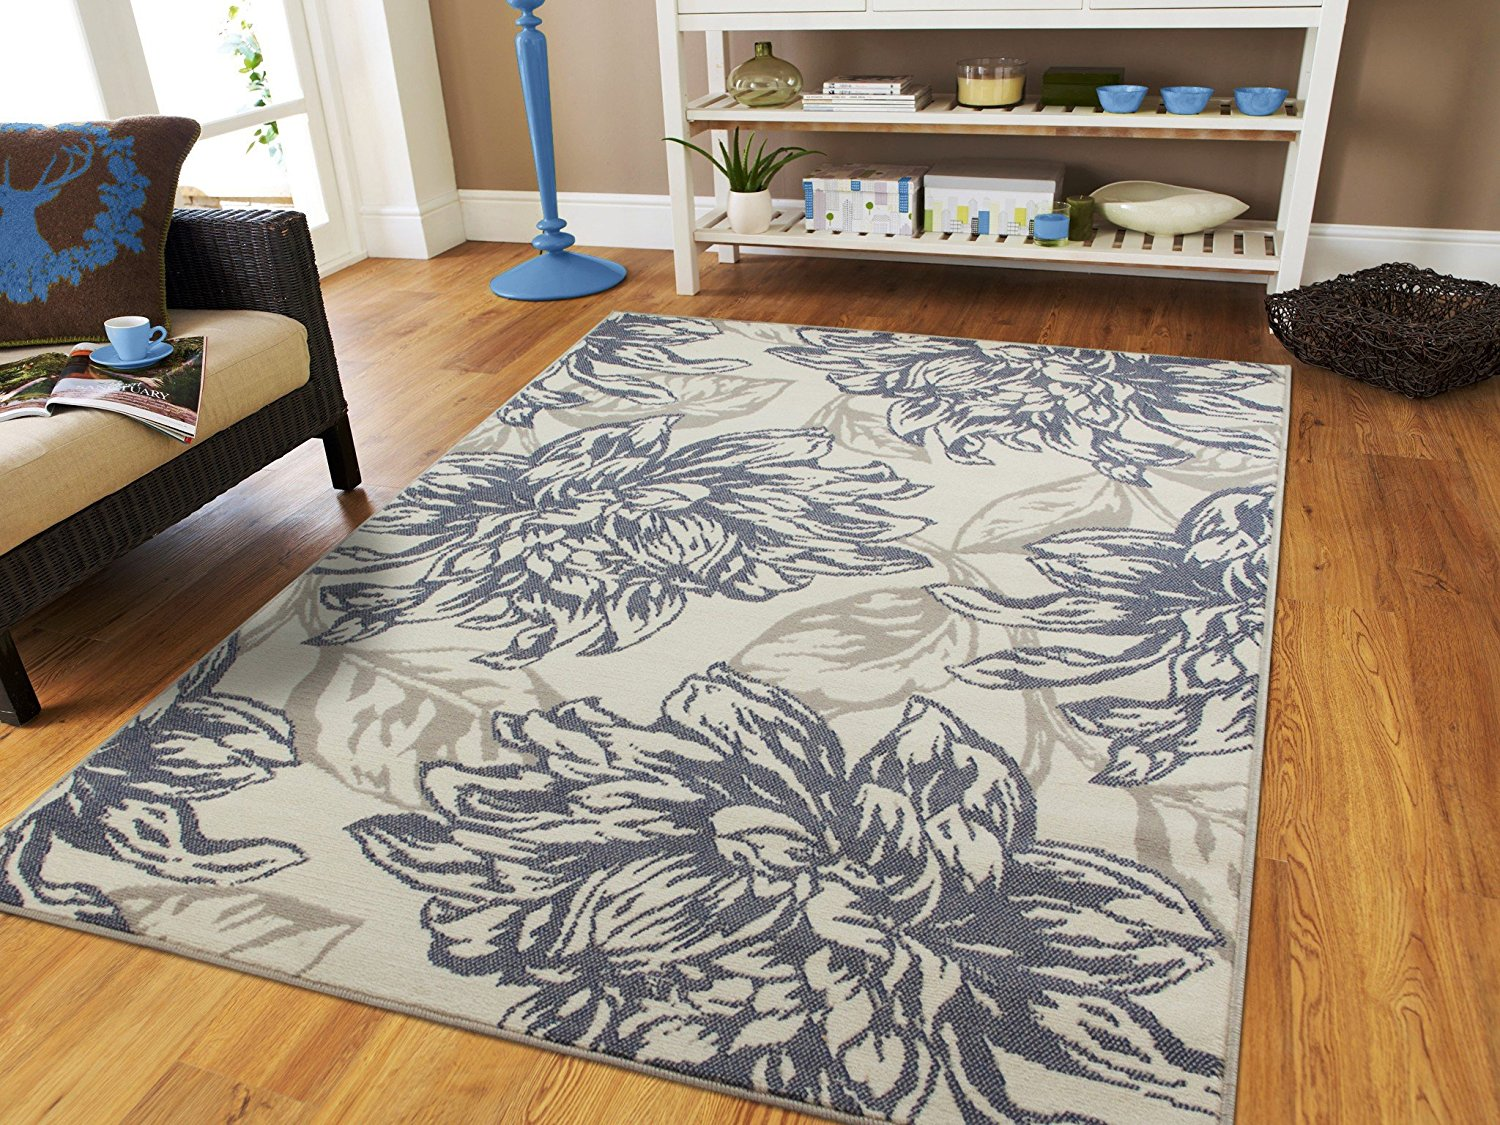 Modern Gray Area Rugs On Clearance 5 By 7 Area Rug For Living Room 5x7  Under50